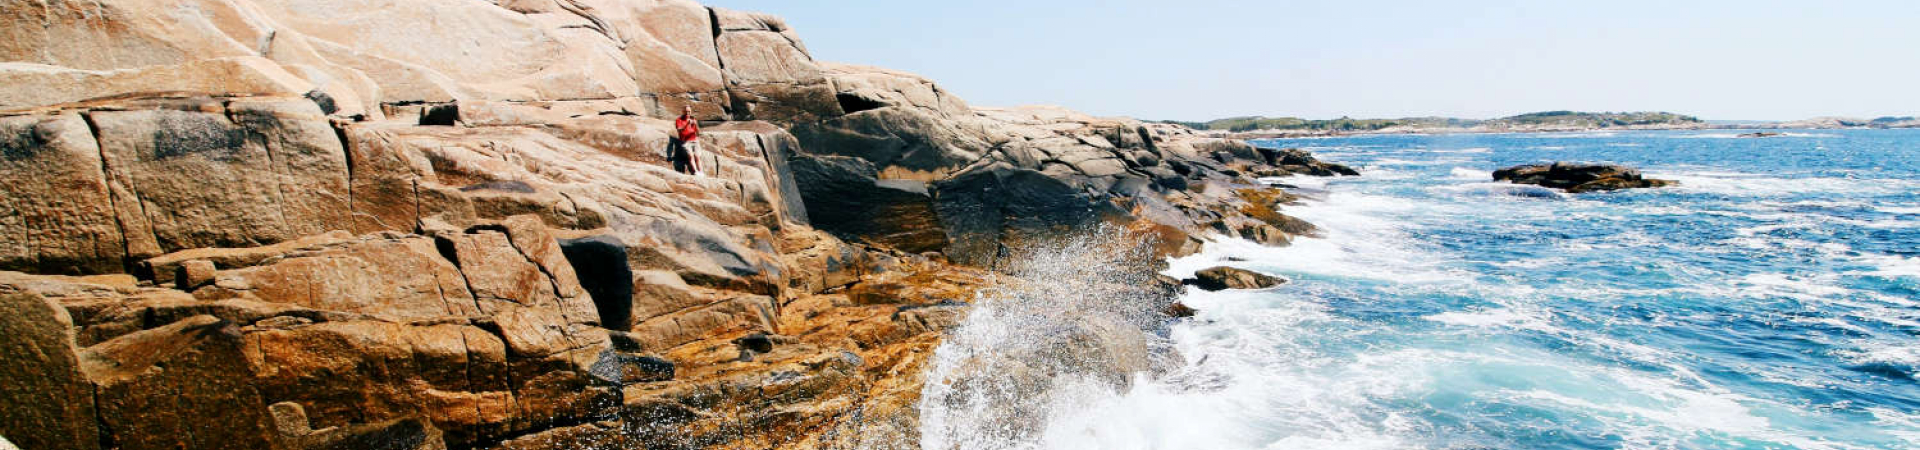 Waves crashing on coastal rocks in Nova Scotia